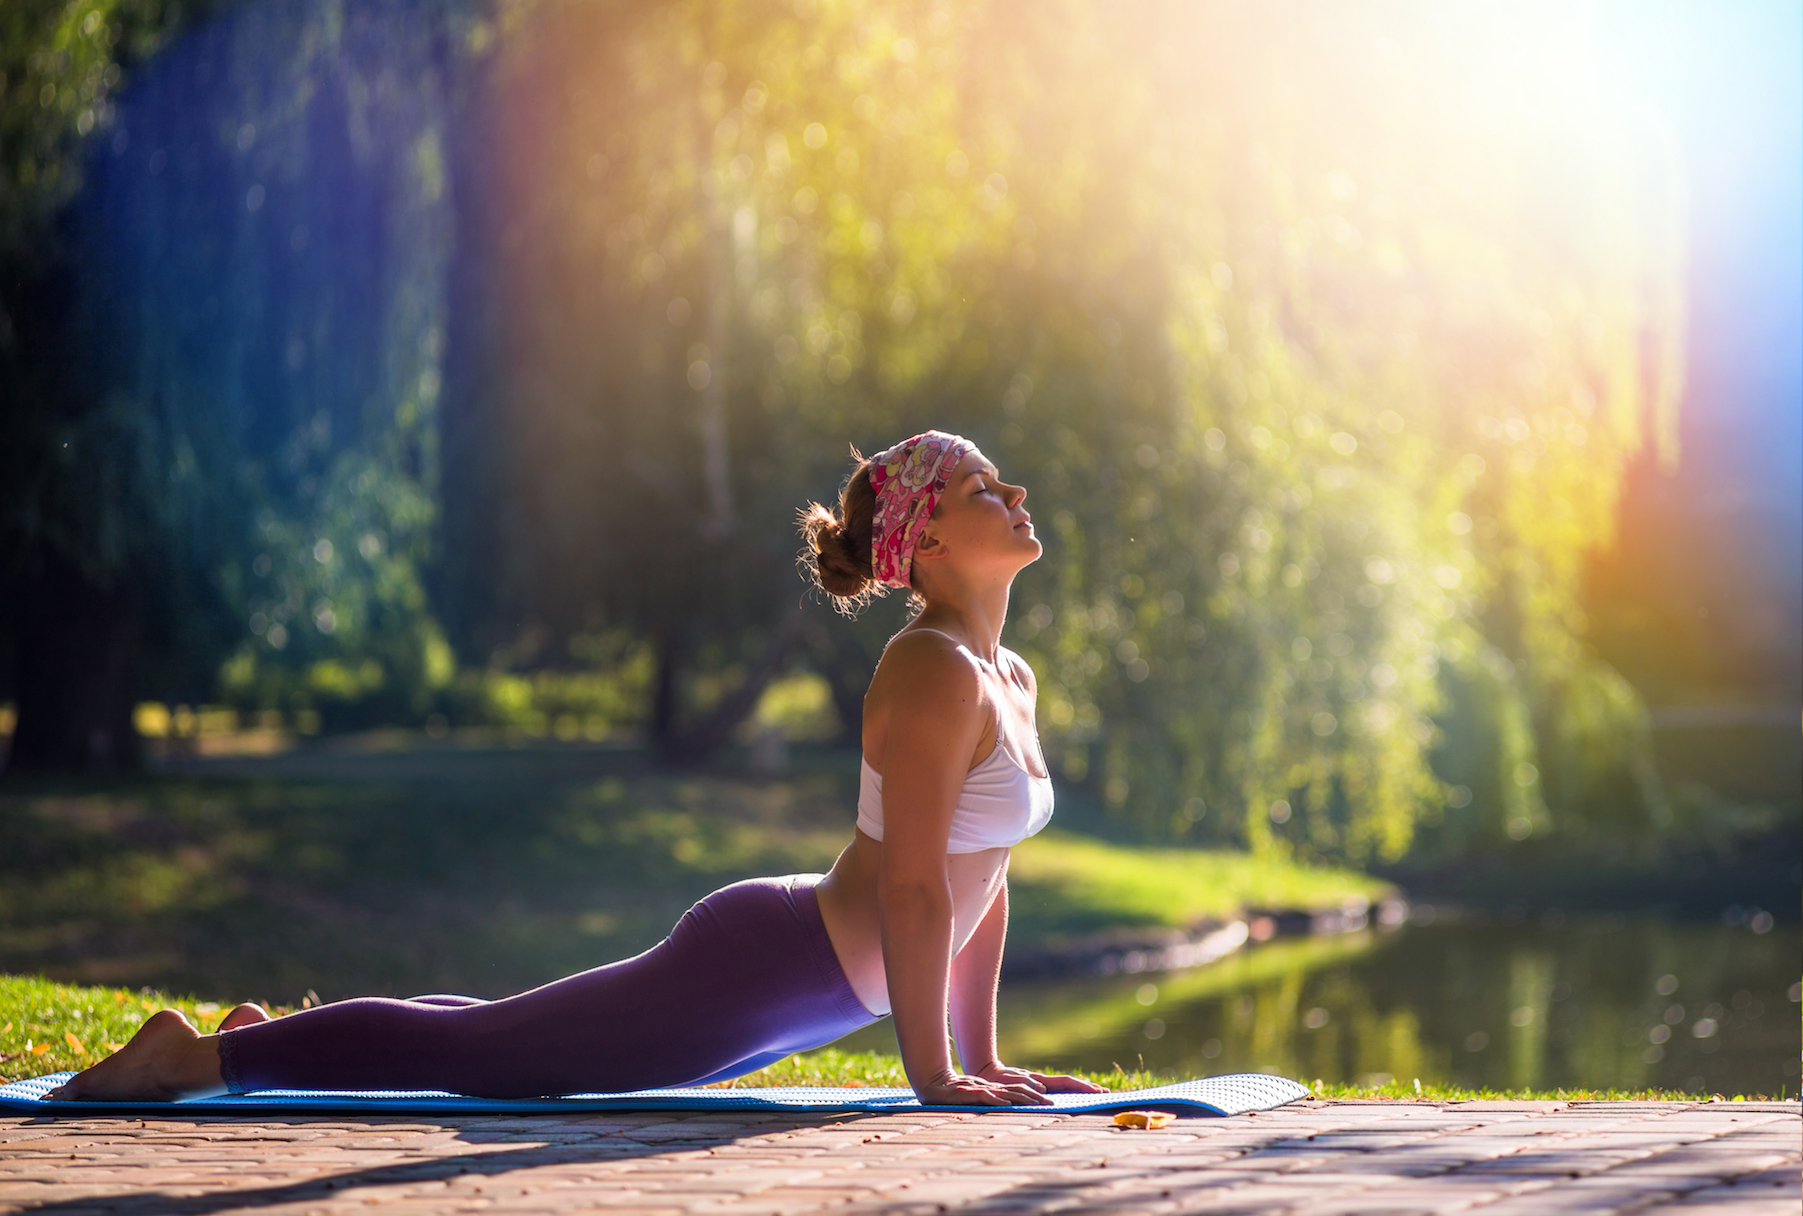 According to a new study from Boston Medical Center, yoga is just as safe and effective as physical therapy in treating lower back pain.